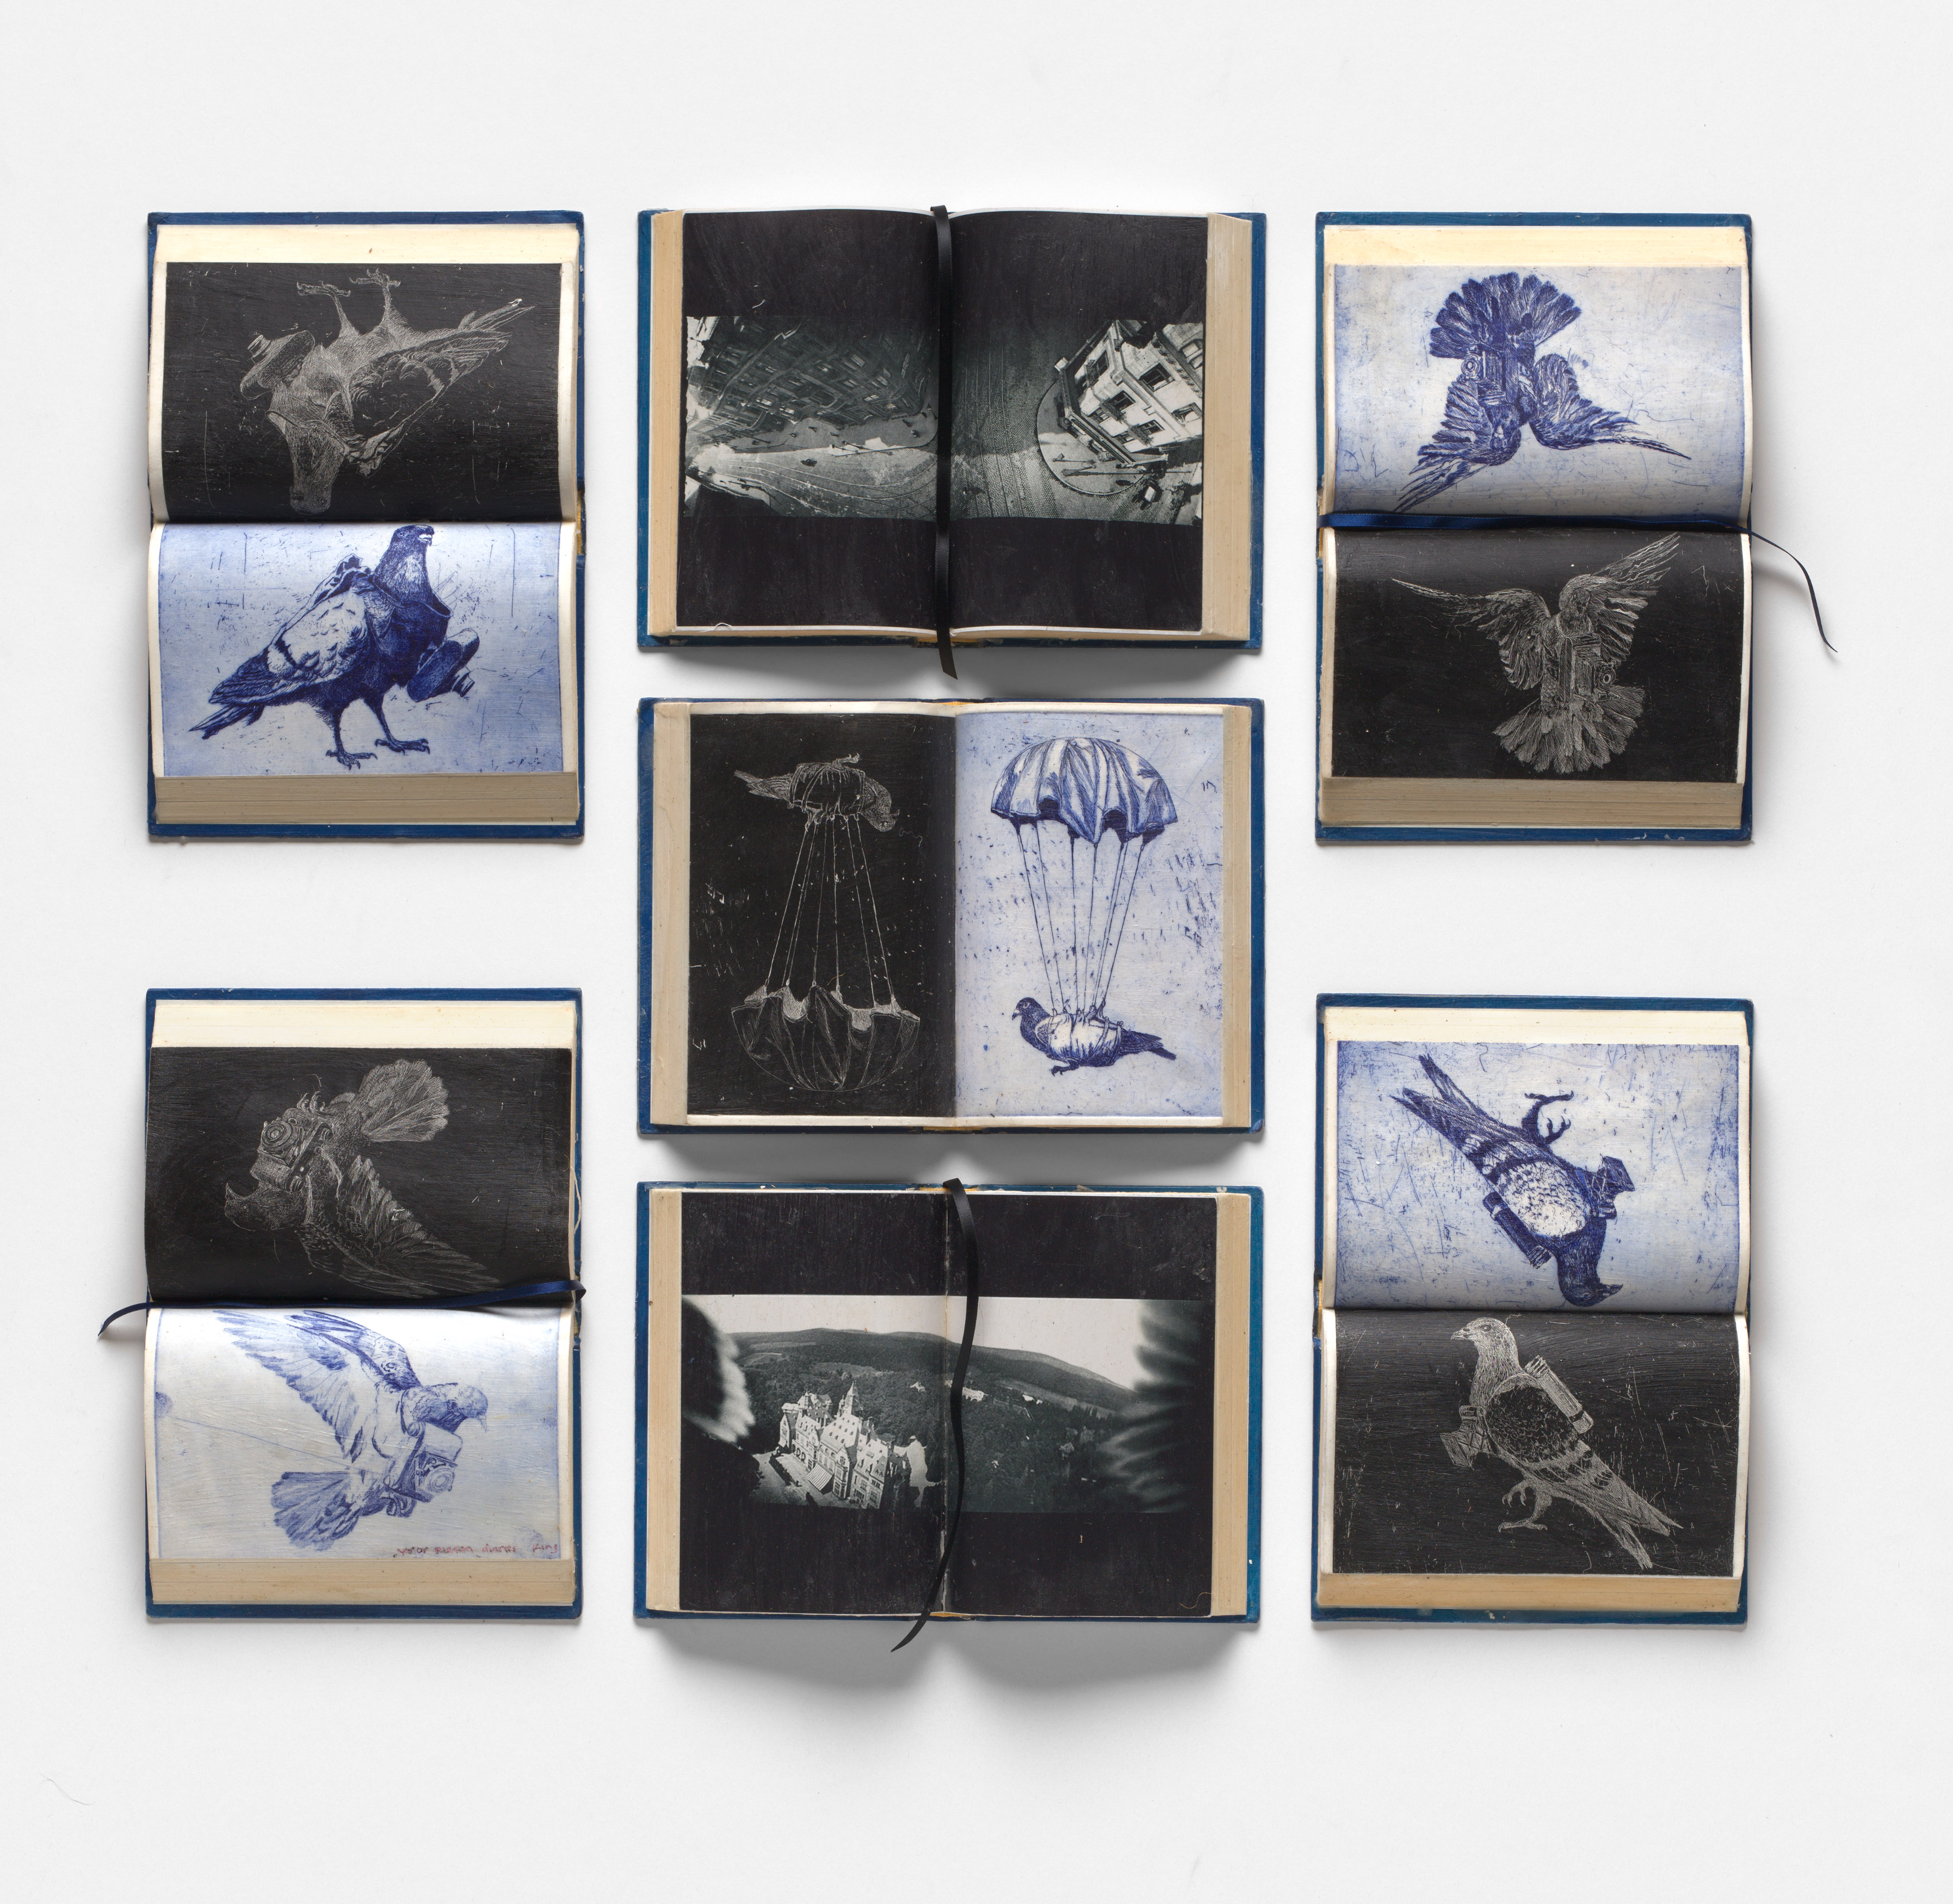 war pigeon diaries, etching, relief etching, photographs, hard cover books, ribbon, wax